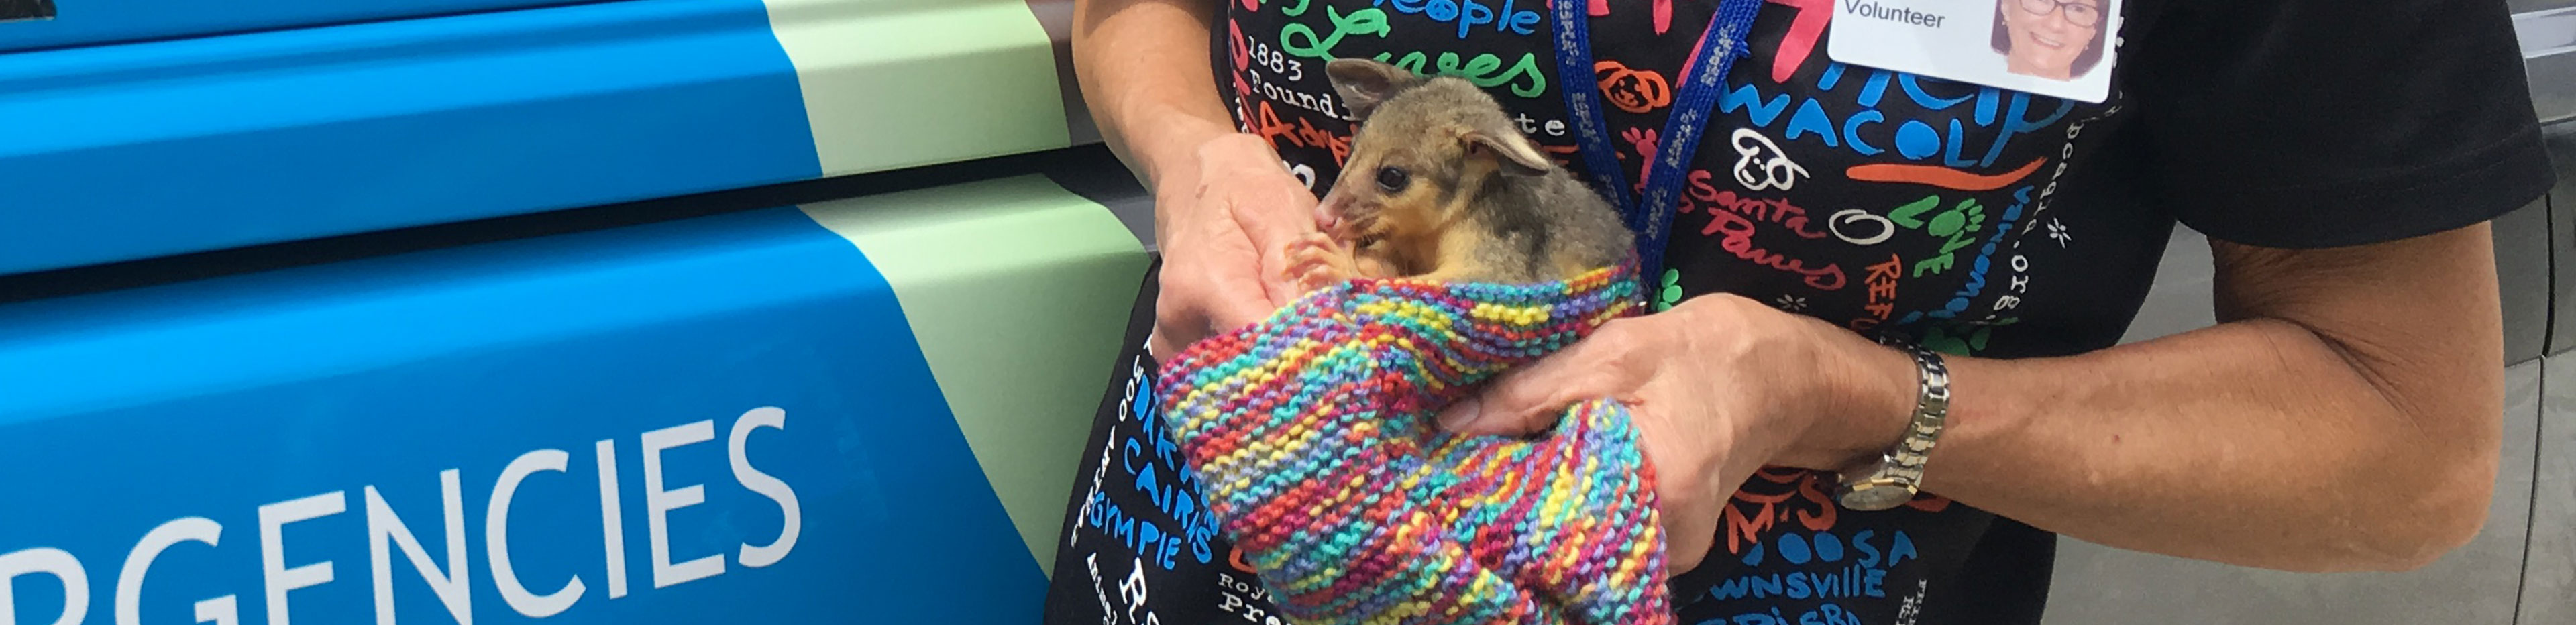 RSPCA animal ambulance driver holding baby possum